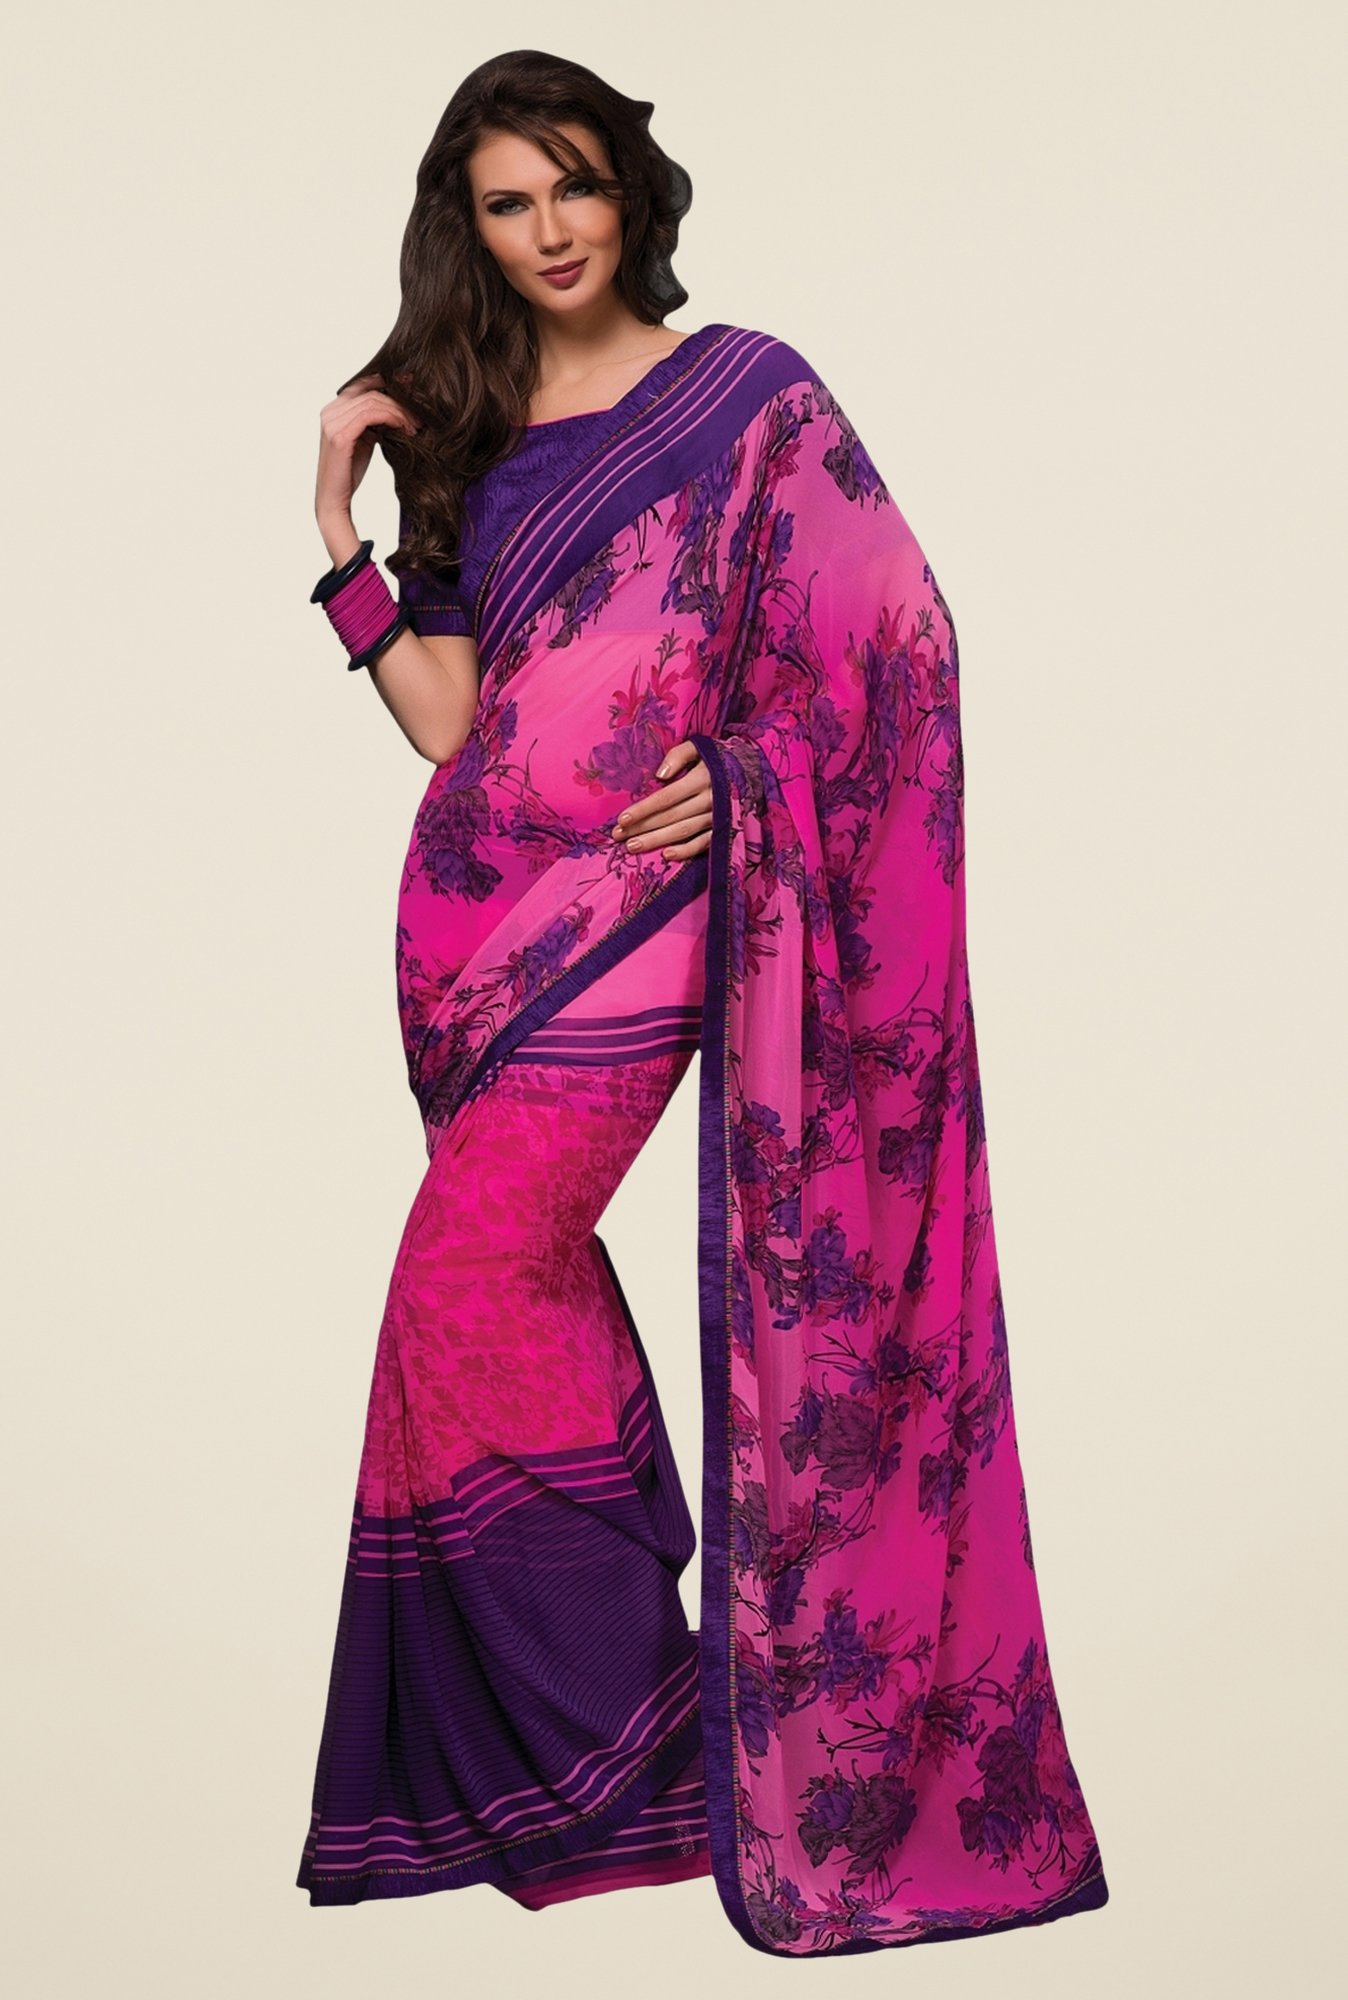 Triveni Magenta & Purple Printed Faux Georgette Saree